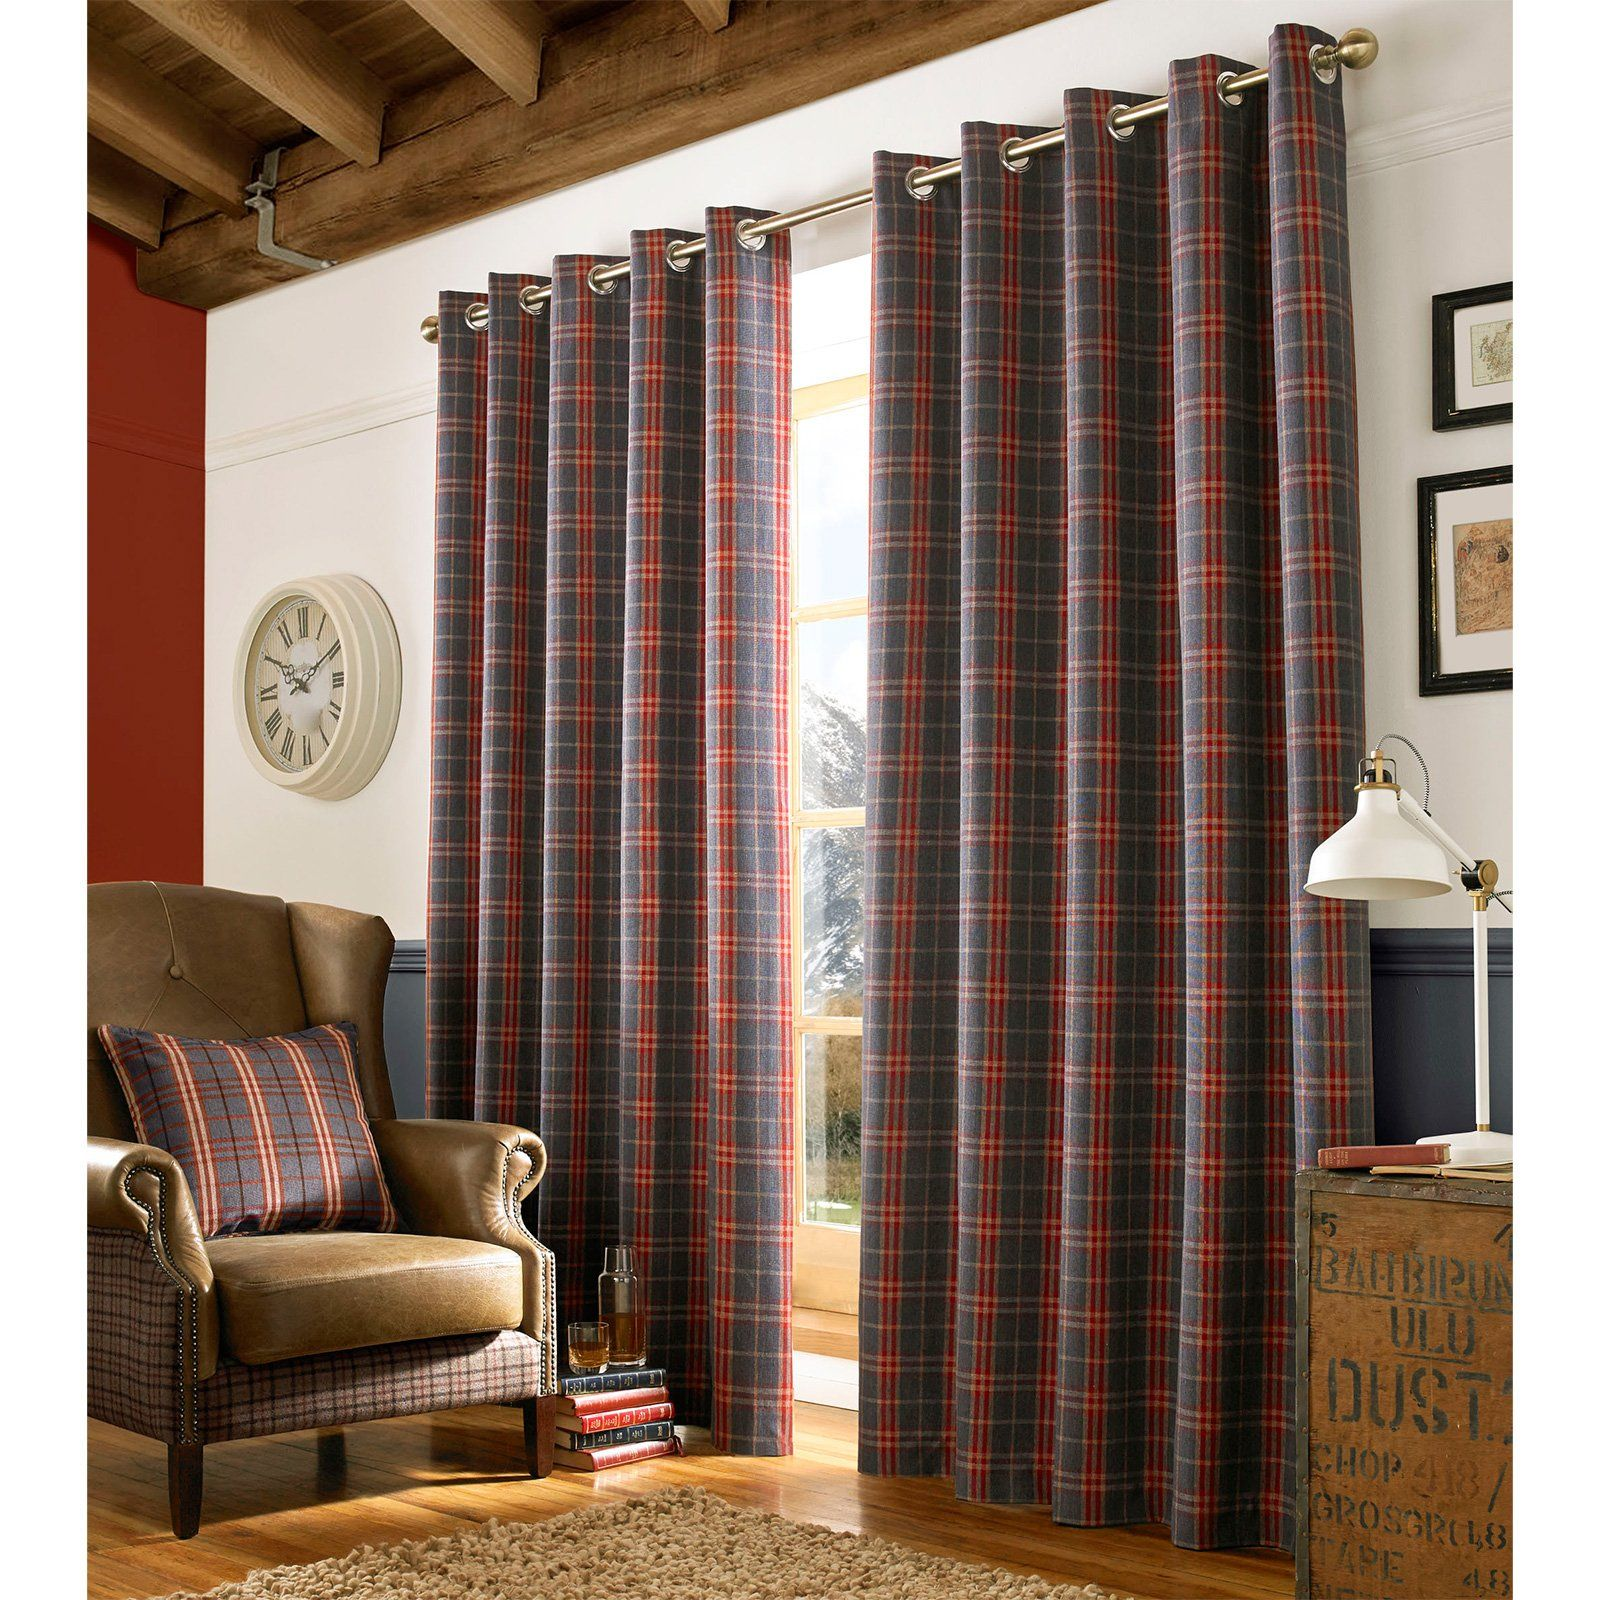 Archie Fully Lined Eyelet Curtains   Woven Tartan Check Denim Blue Curtain  Pair Denim   Blue Red   Curtain Pair x. Archie Fully Lined Eyelet Curtains   Woven Tartan Check Denim Blue